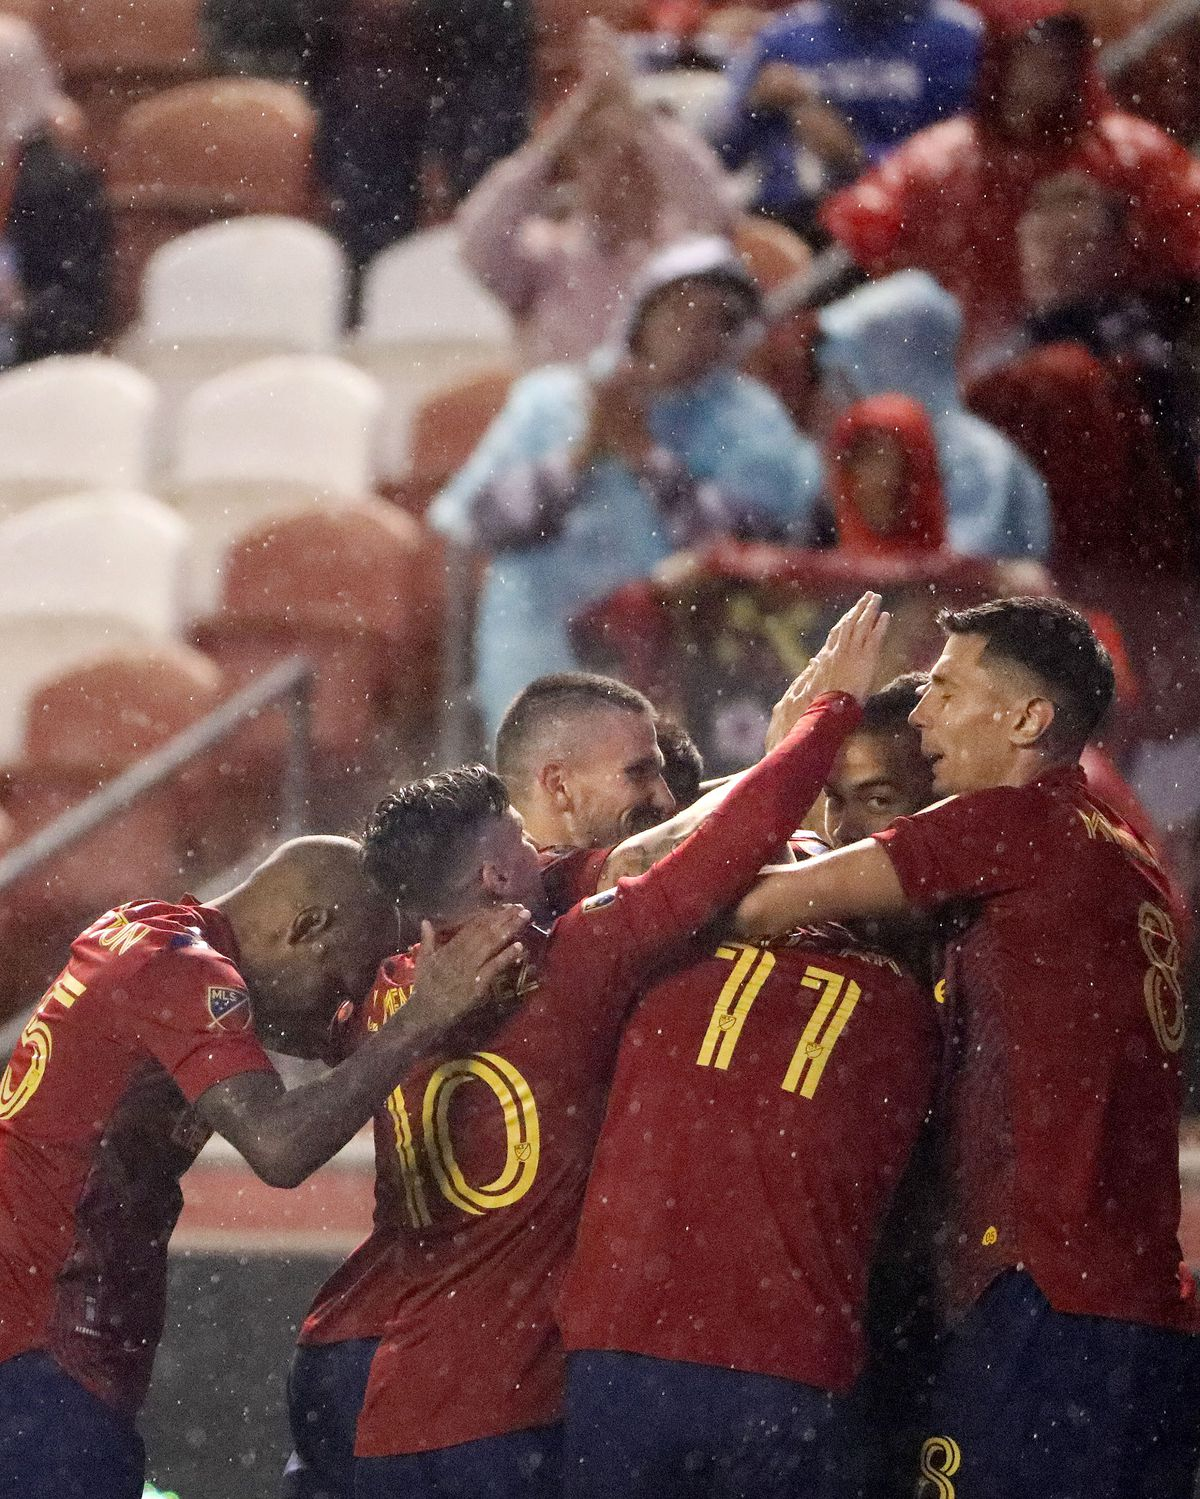 Real Salt Lake celebrates after Justin Meram scores against Houston Dynamo during a soccer game at Rio Tinto Stadium in Sandy on Wednesday, Aug. 18, 2021.